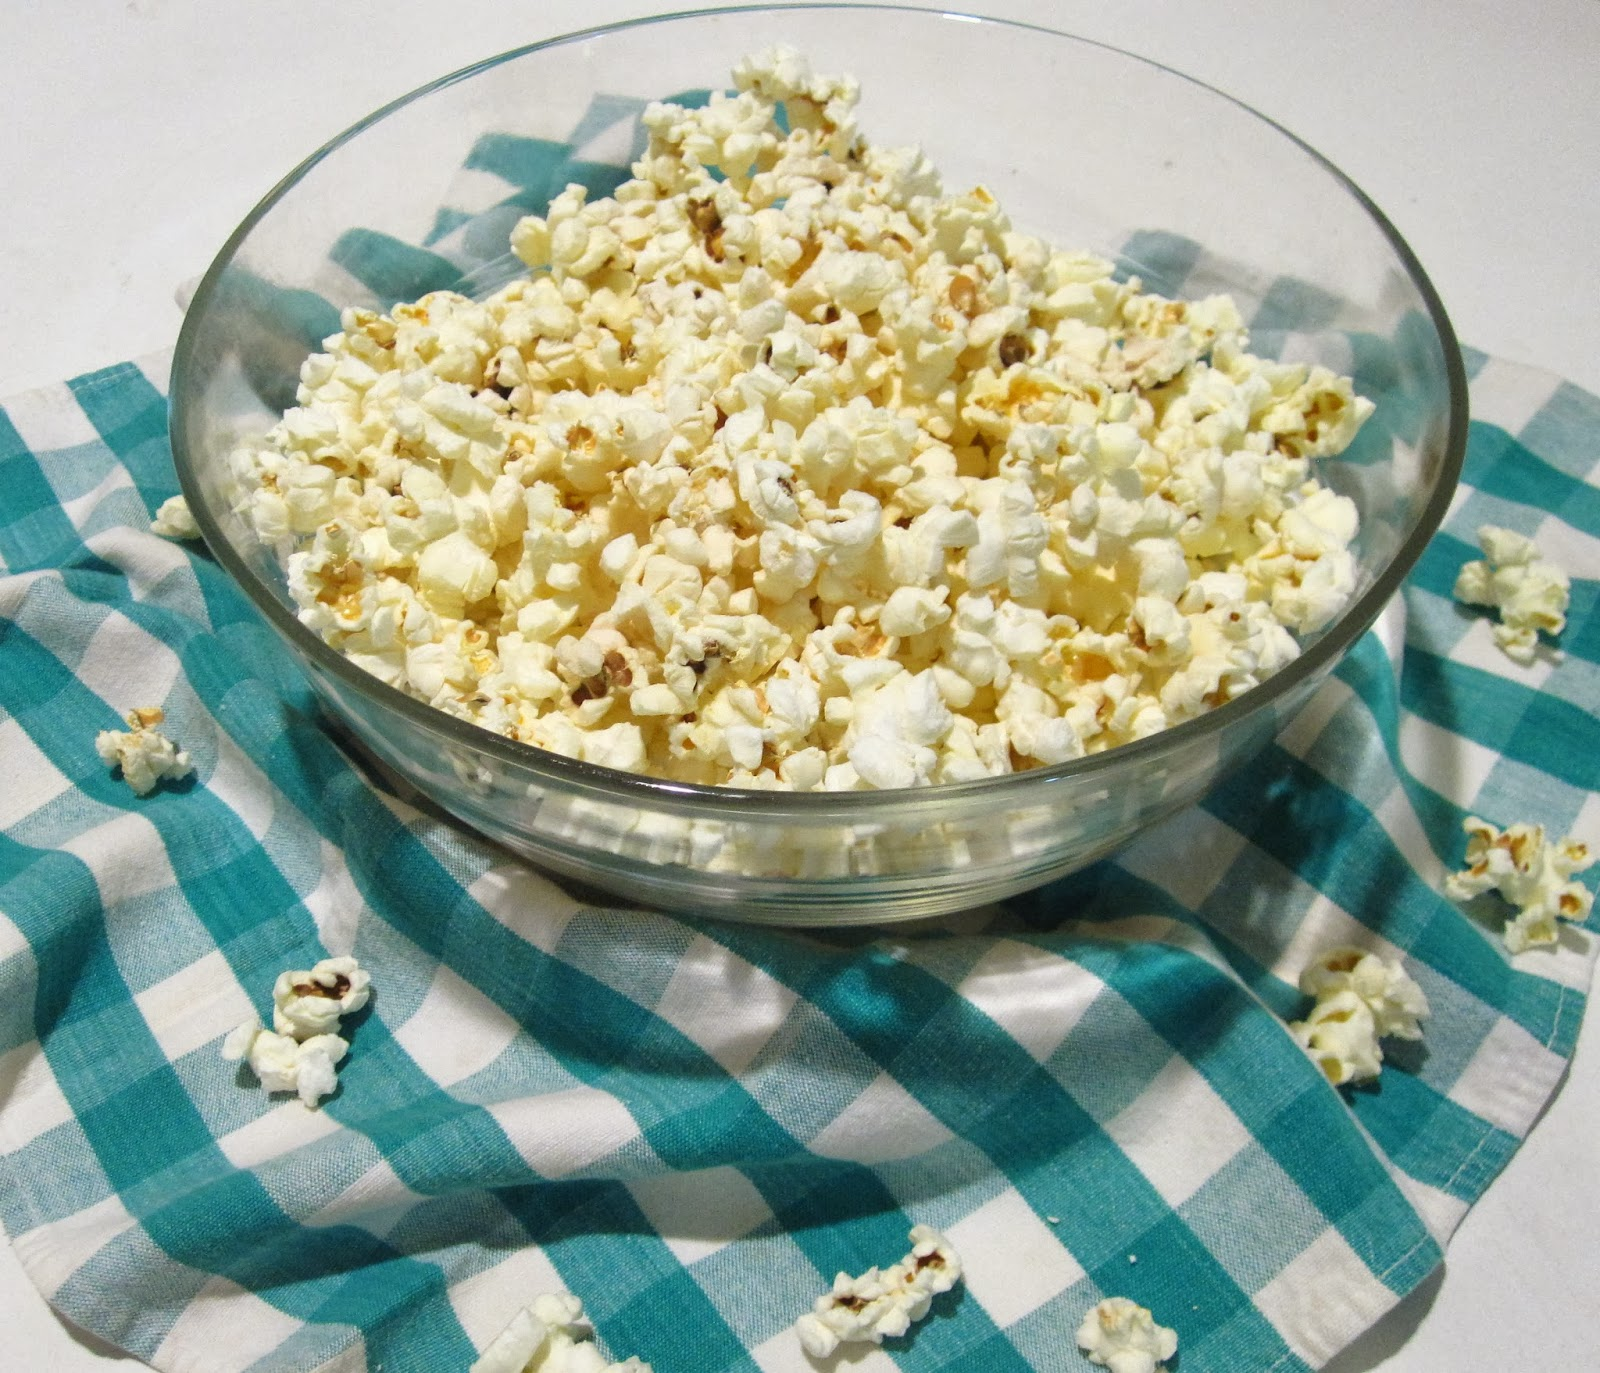 Diy Easy Homemade Microwave Popcorn With A Variety Of Seasoning Ideas The Lindsay Ann